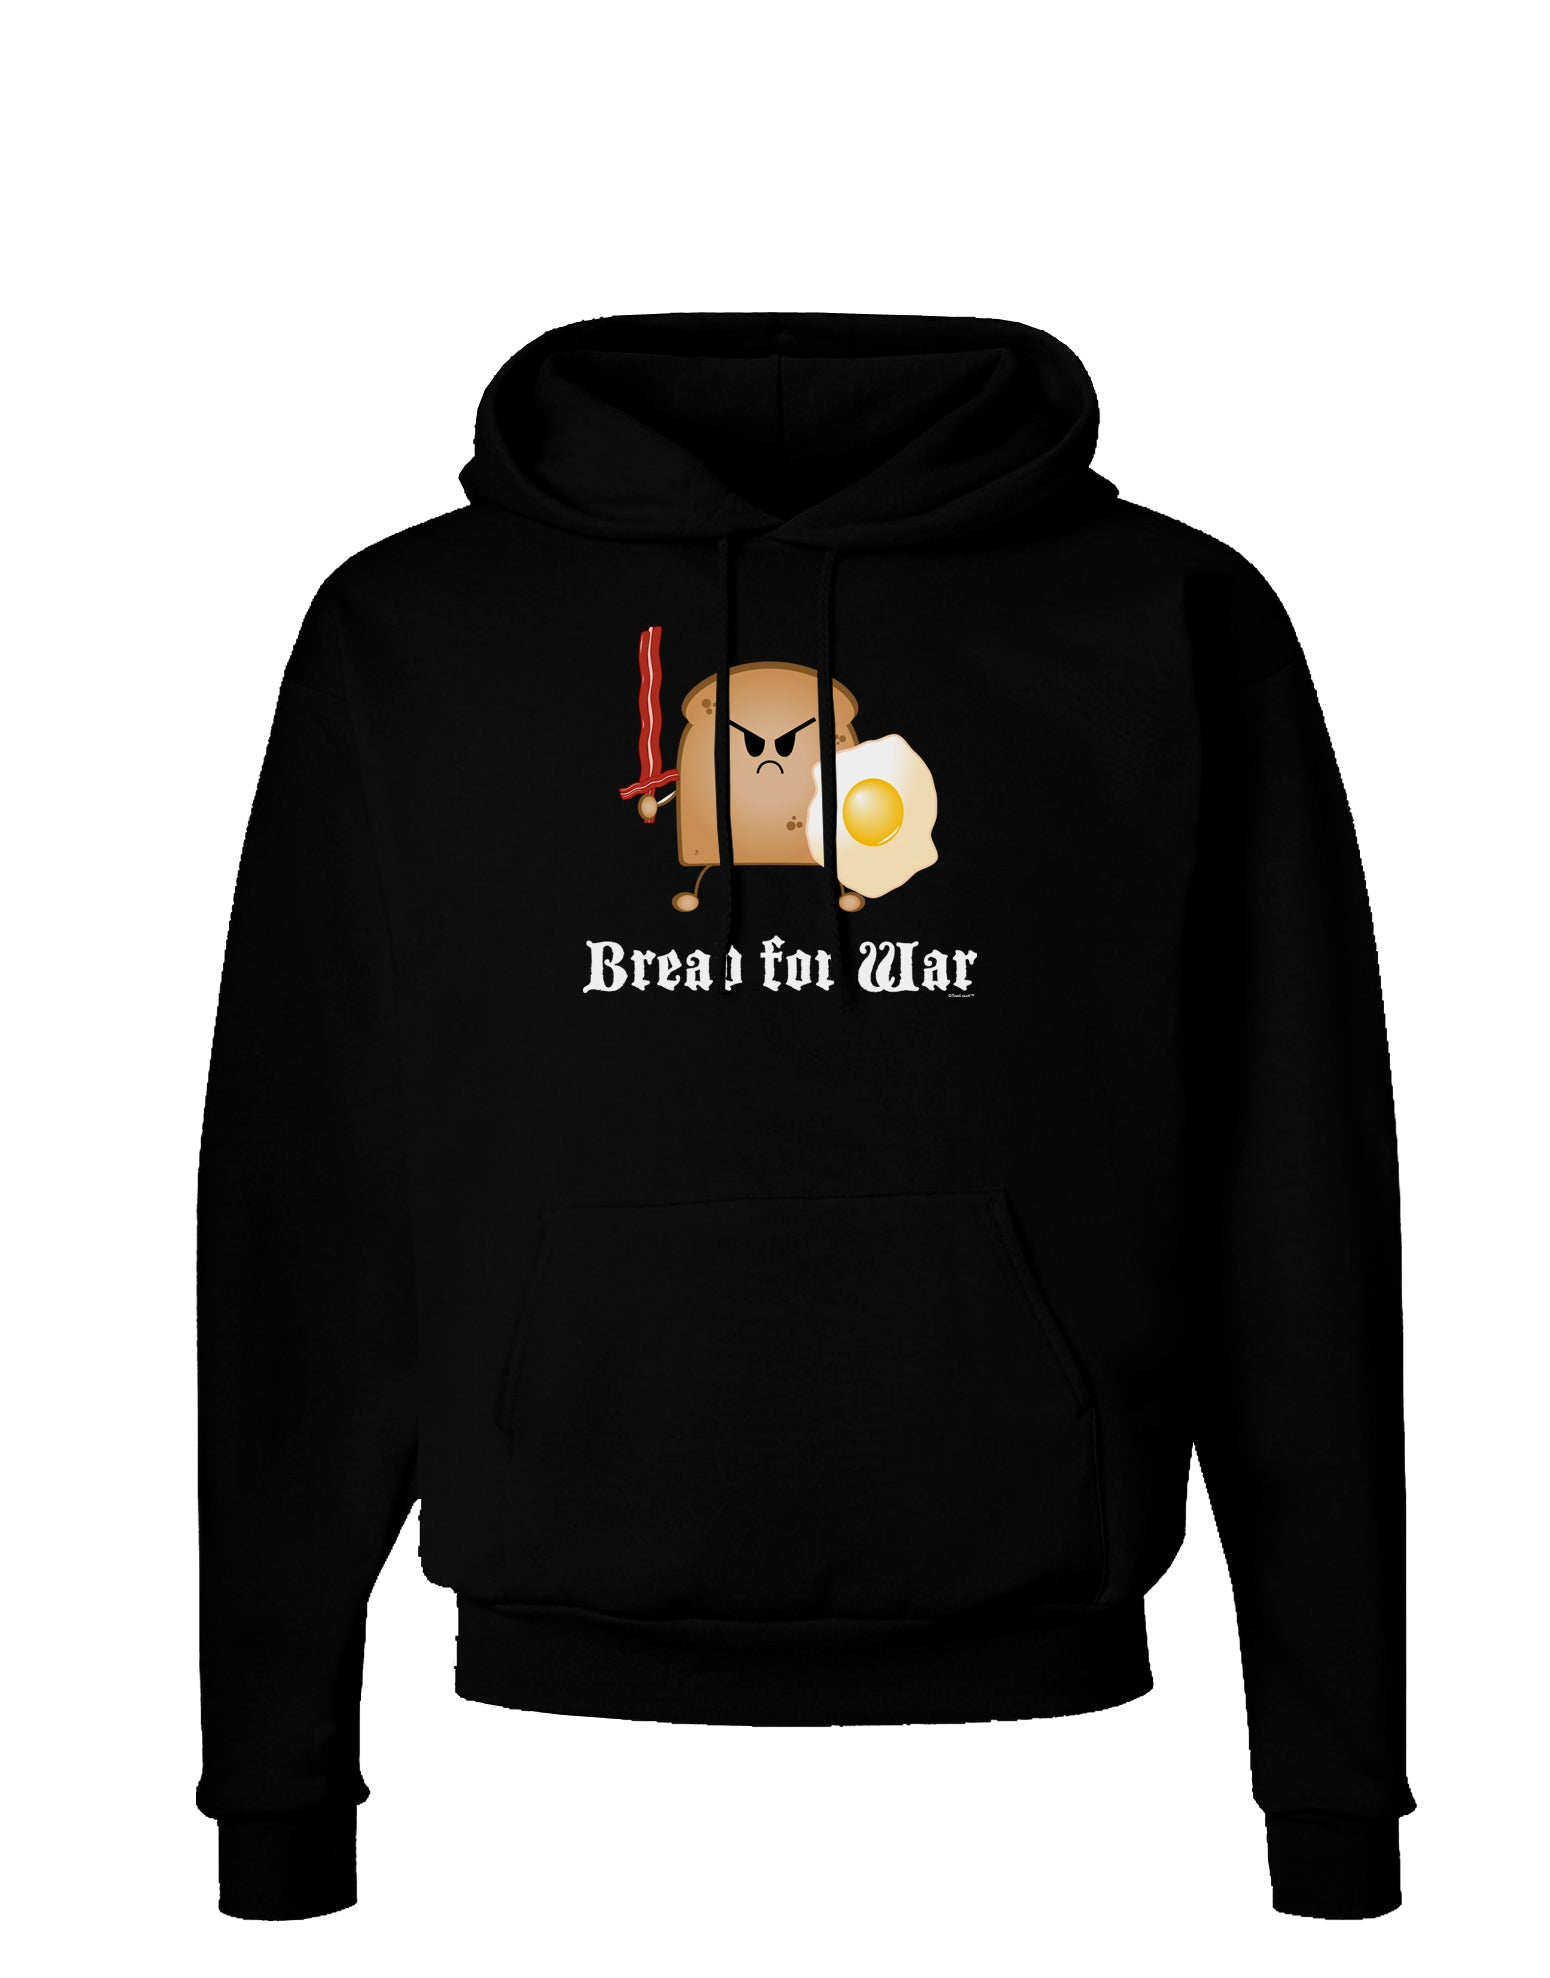 Bread for War Dark Hoodie Sweatshirt